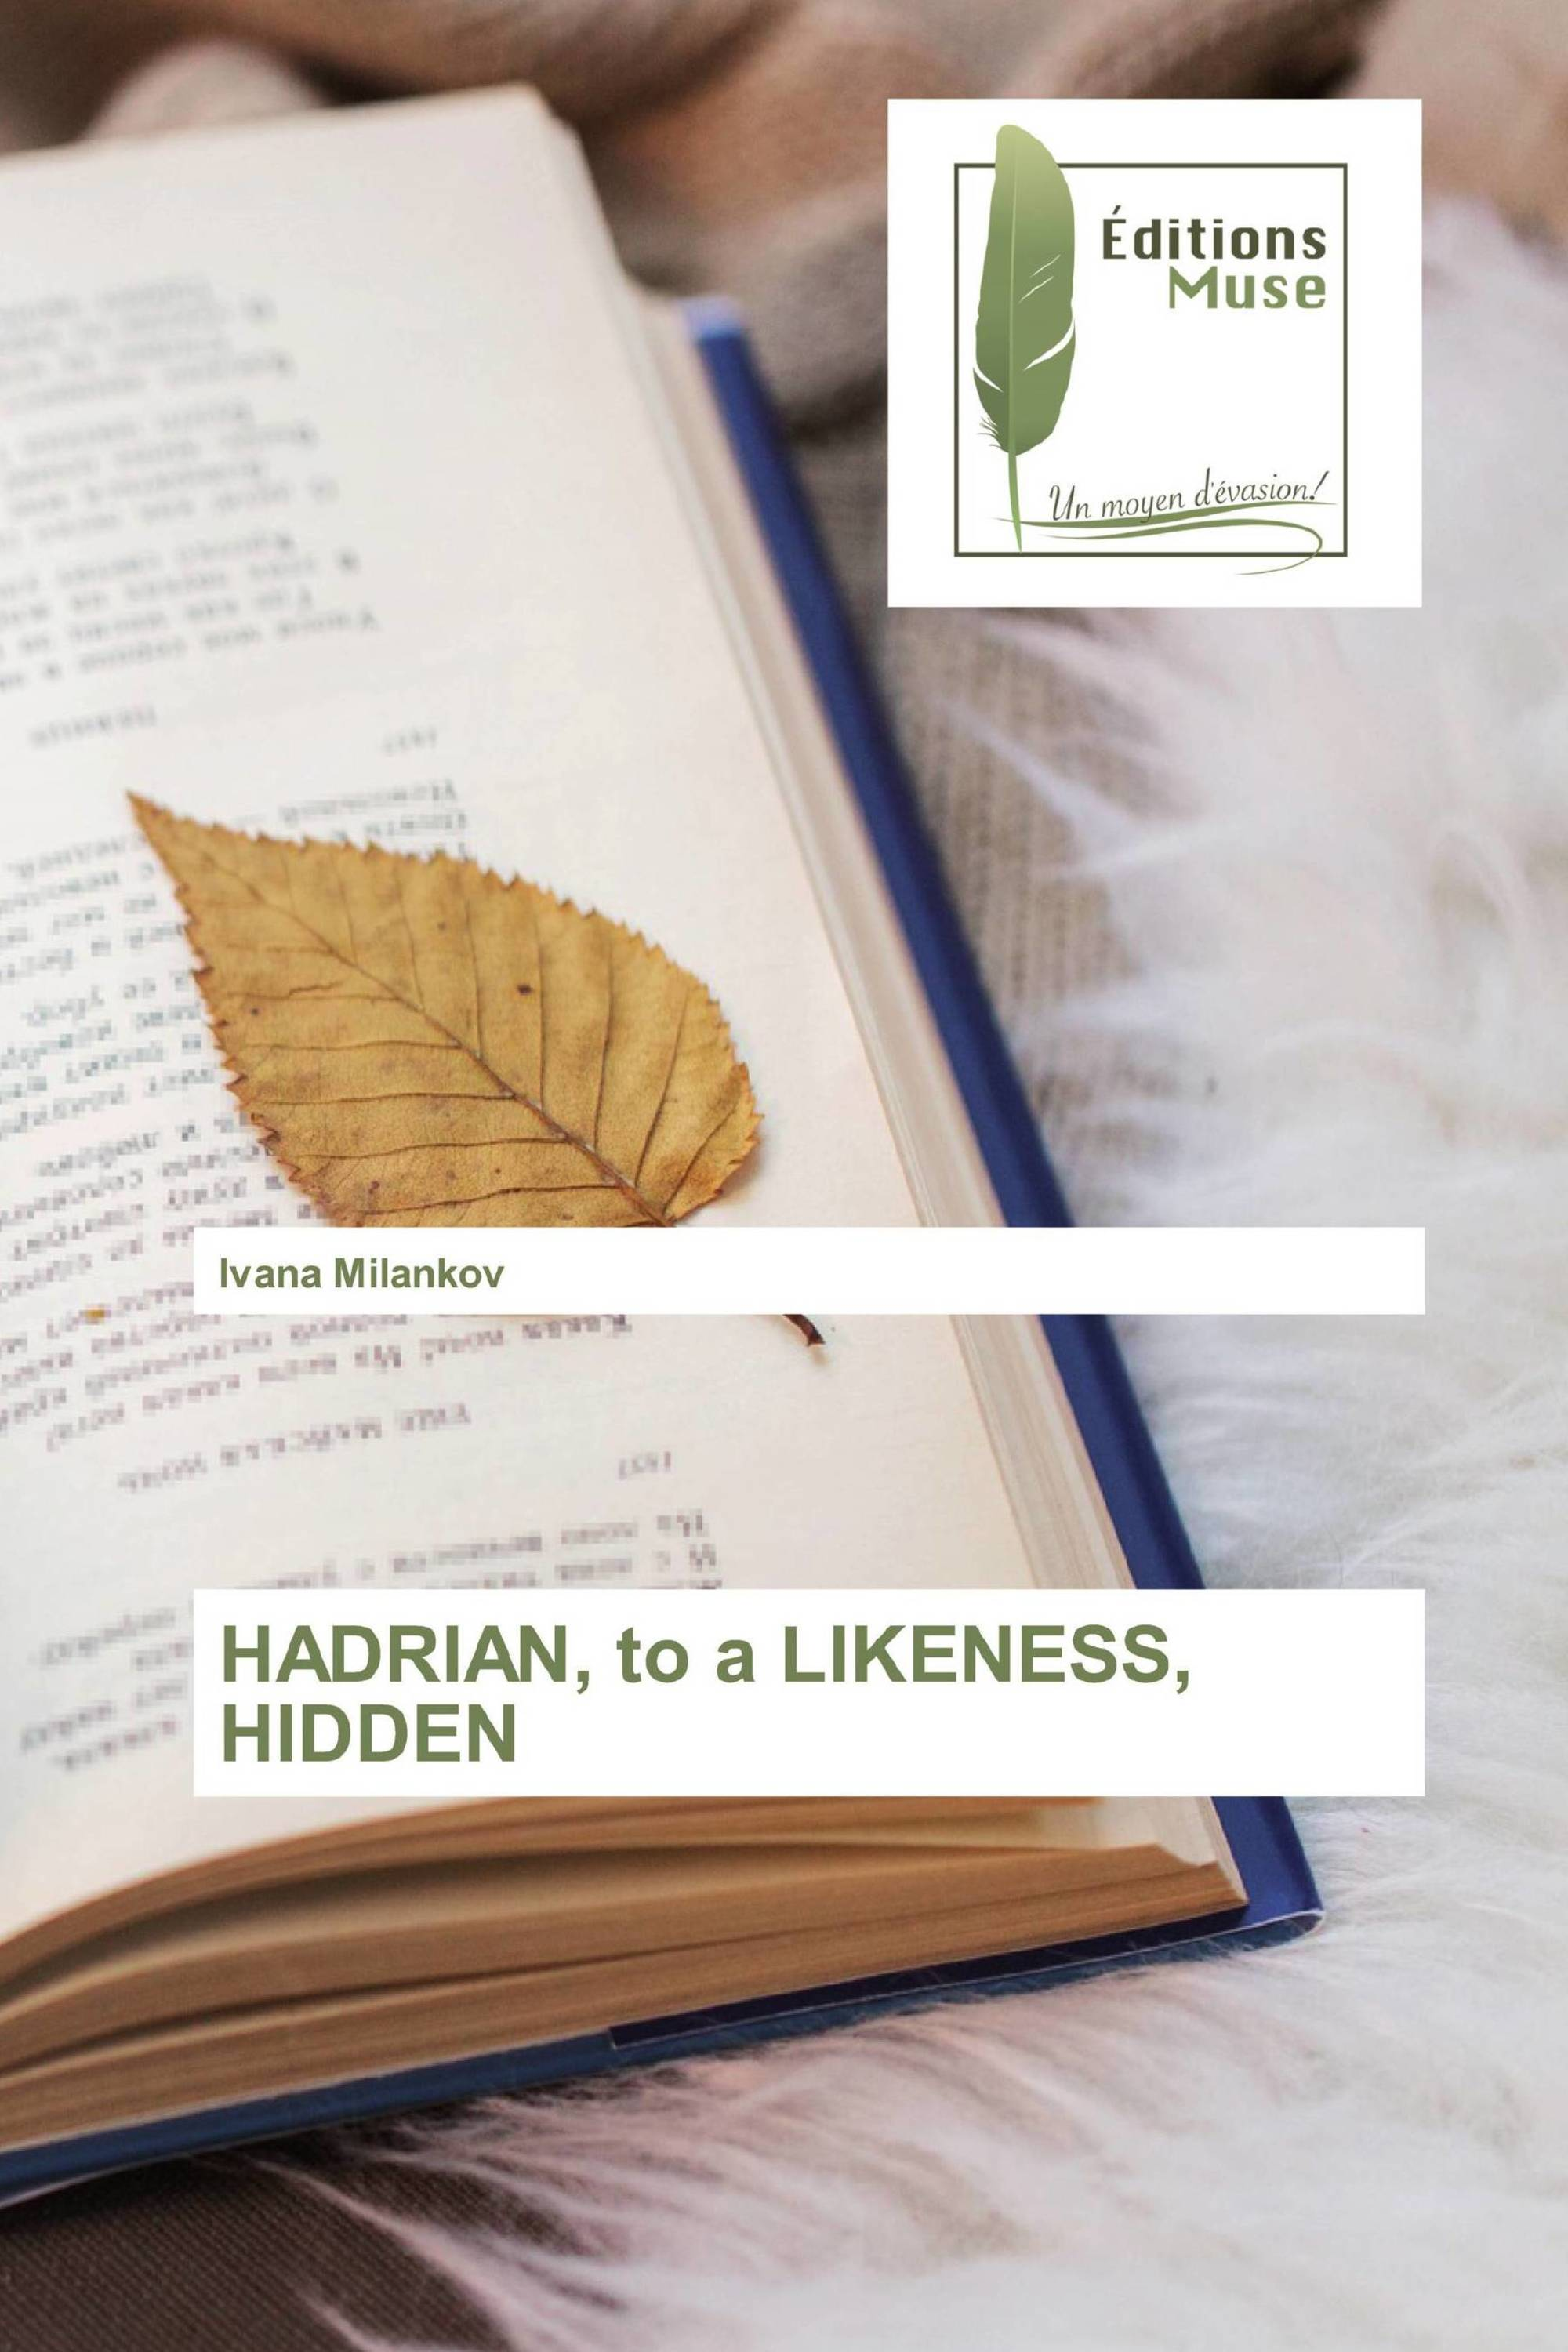 HADRIAN, to a LIKENESS, HIDDEN